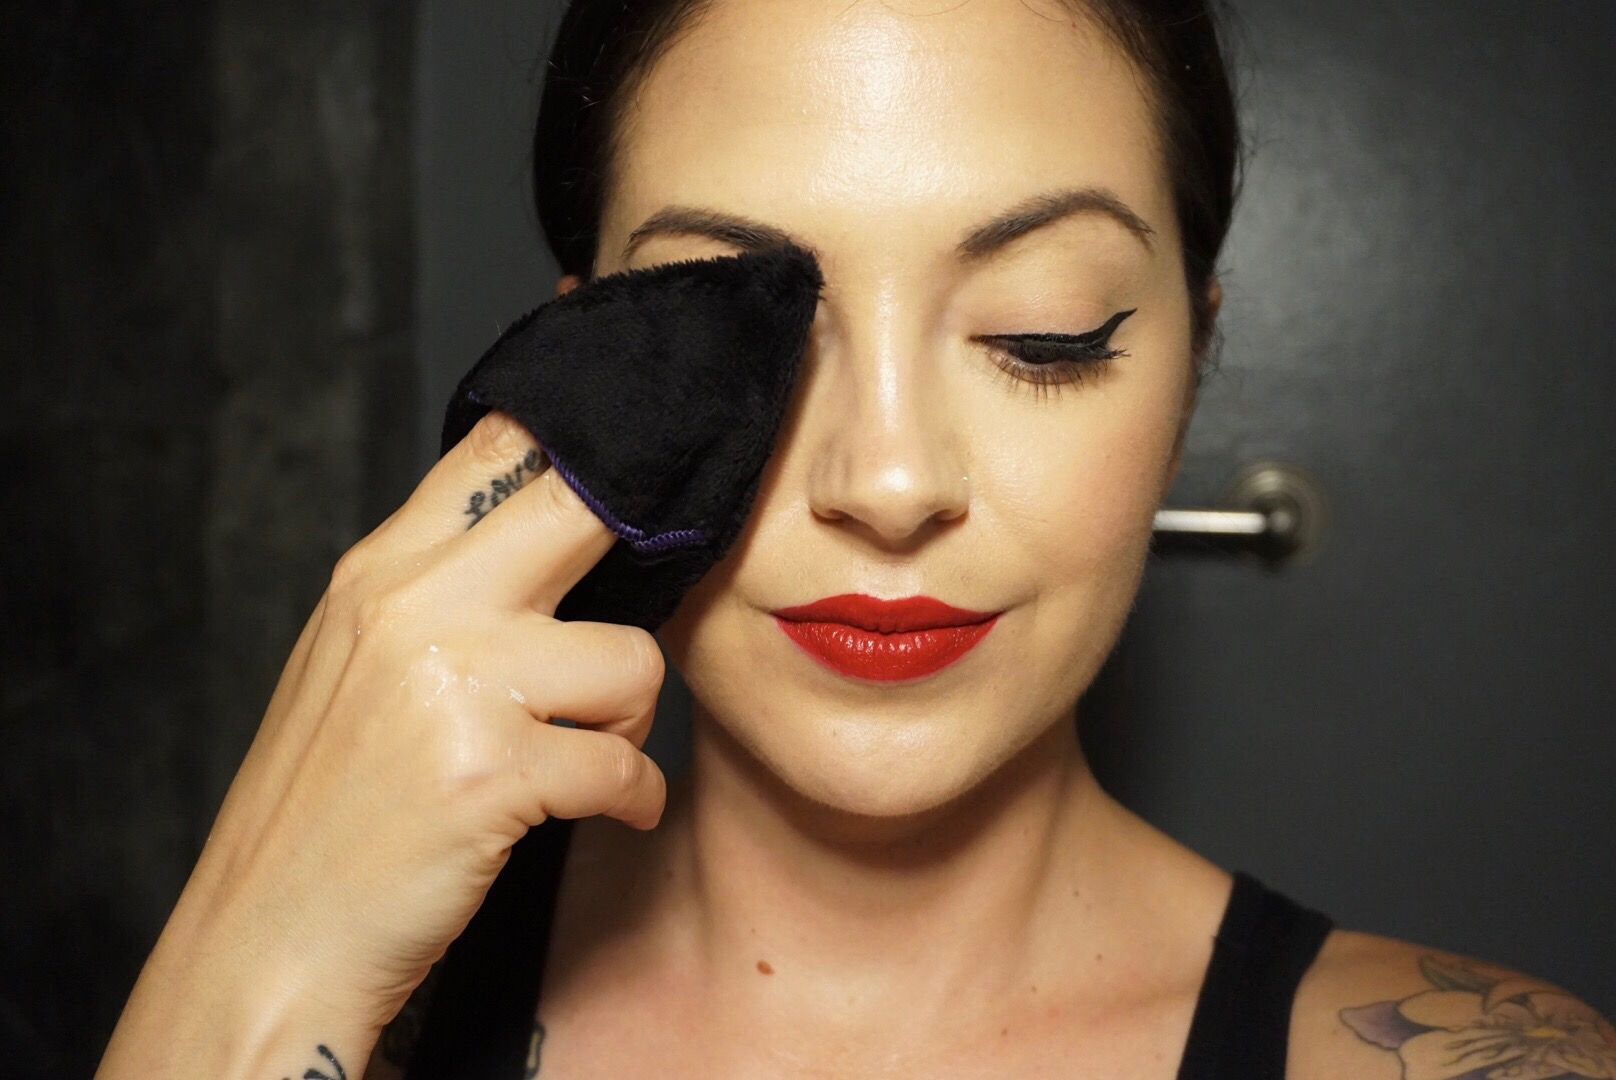 How to get eye makeup off